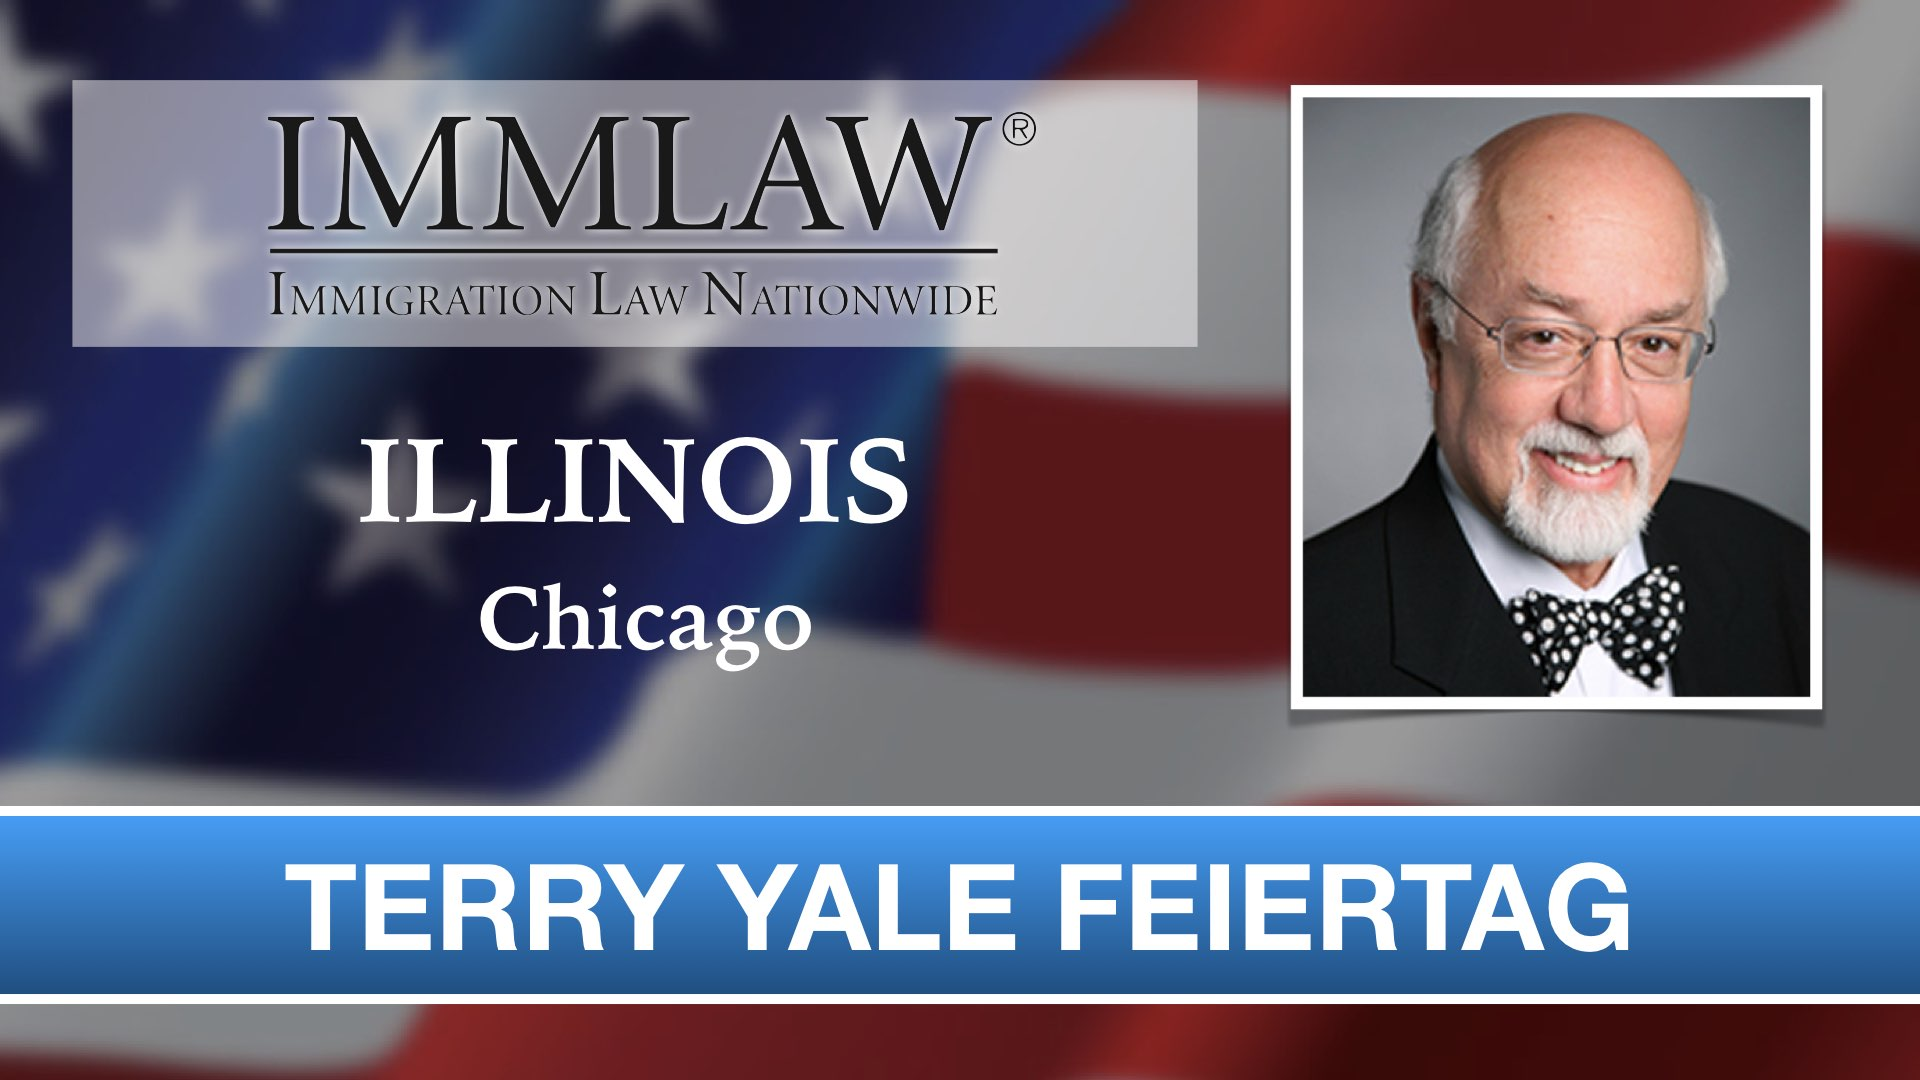 Terry Yale Feiertag, Immigration Lawyer